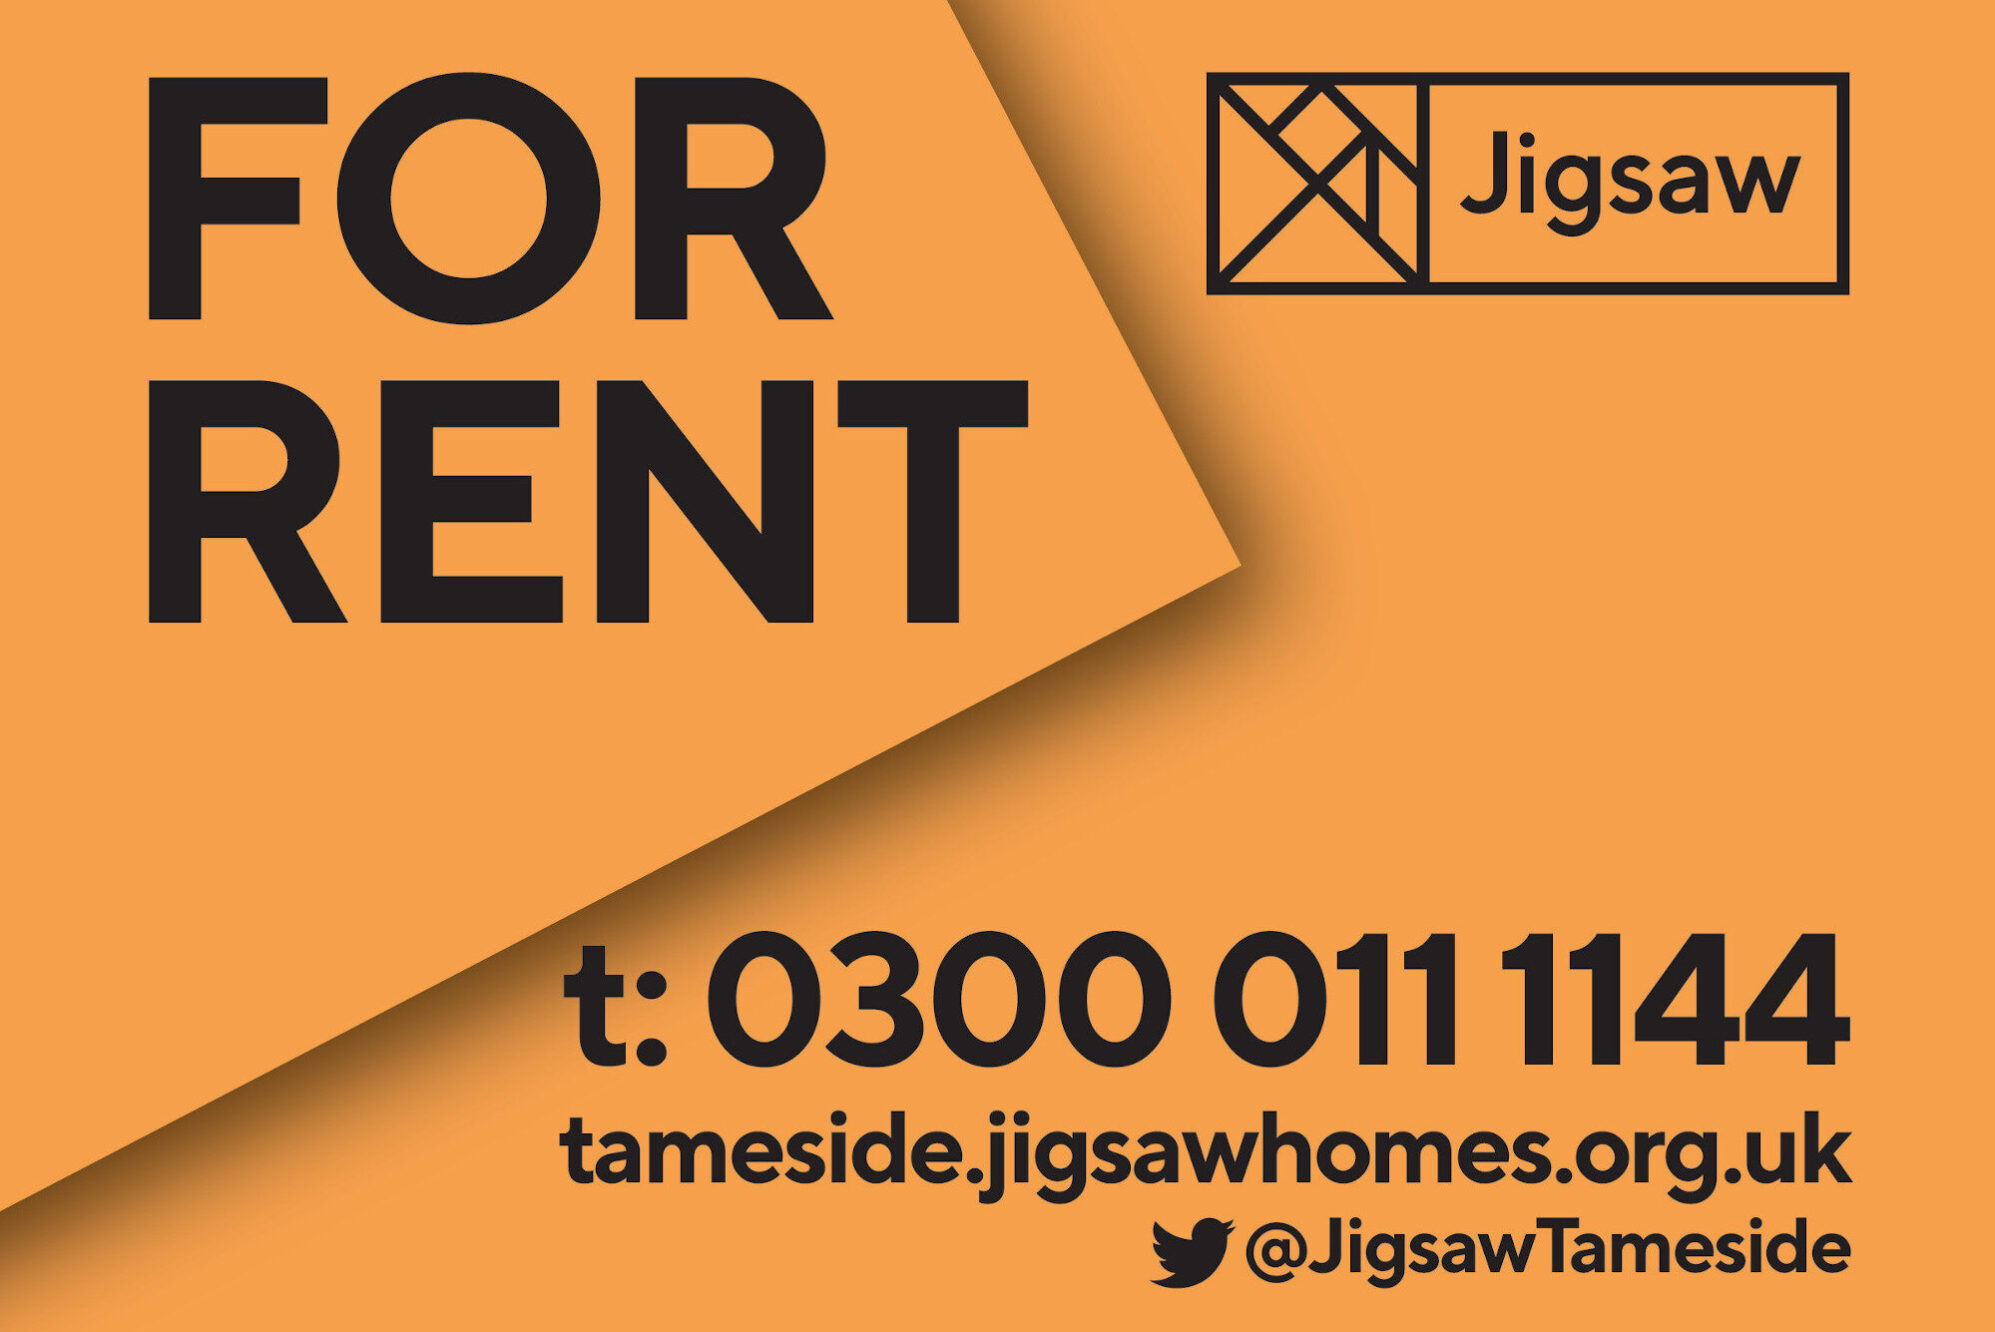 Inverness Road, Dukinfield, Cheshire, SK16 5AB